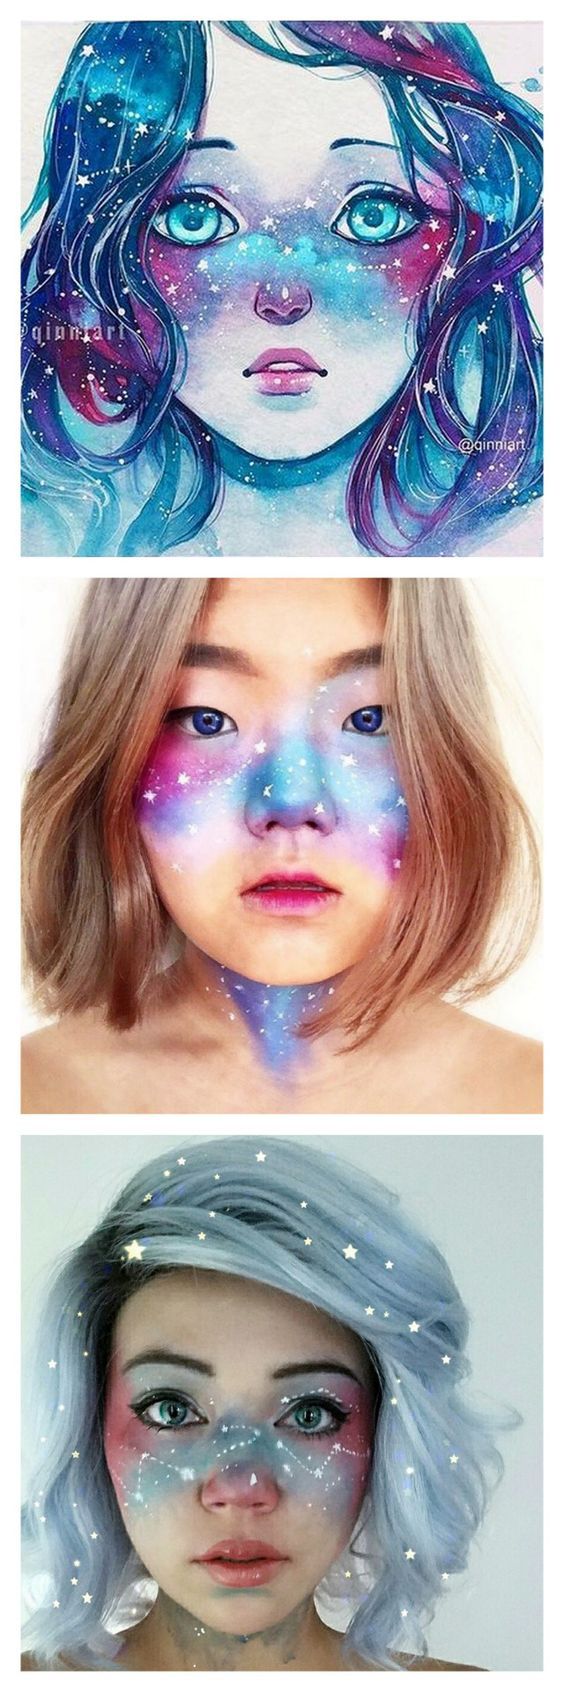 DIY Inspiration: Galaxy Freckles Trend Started by Artist ...